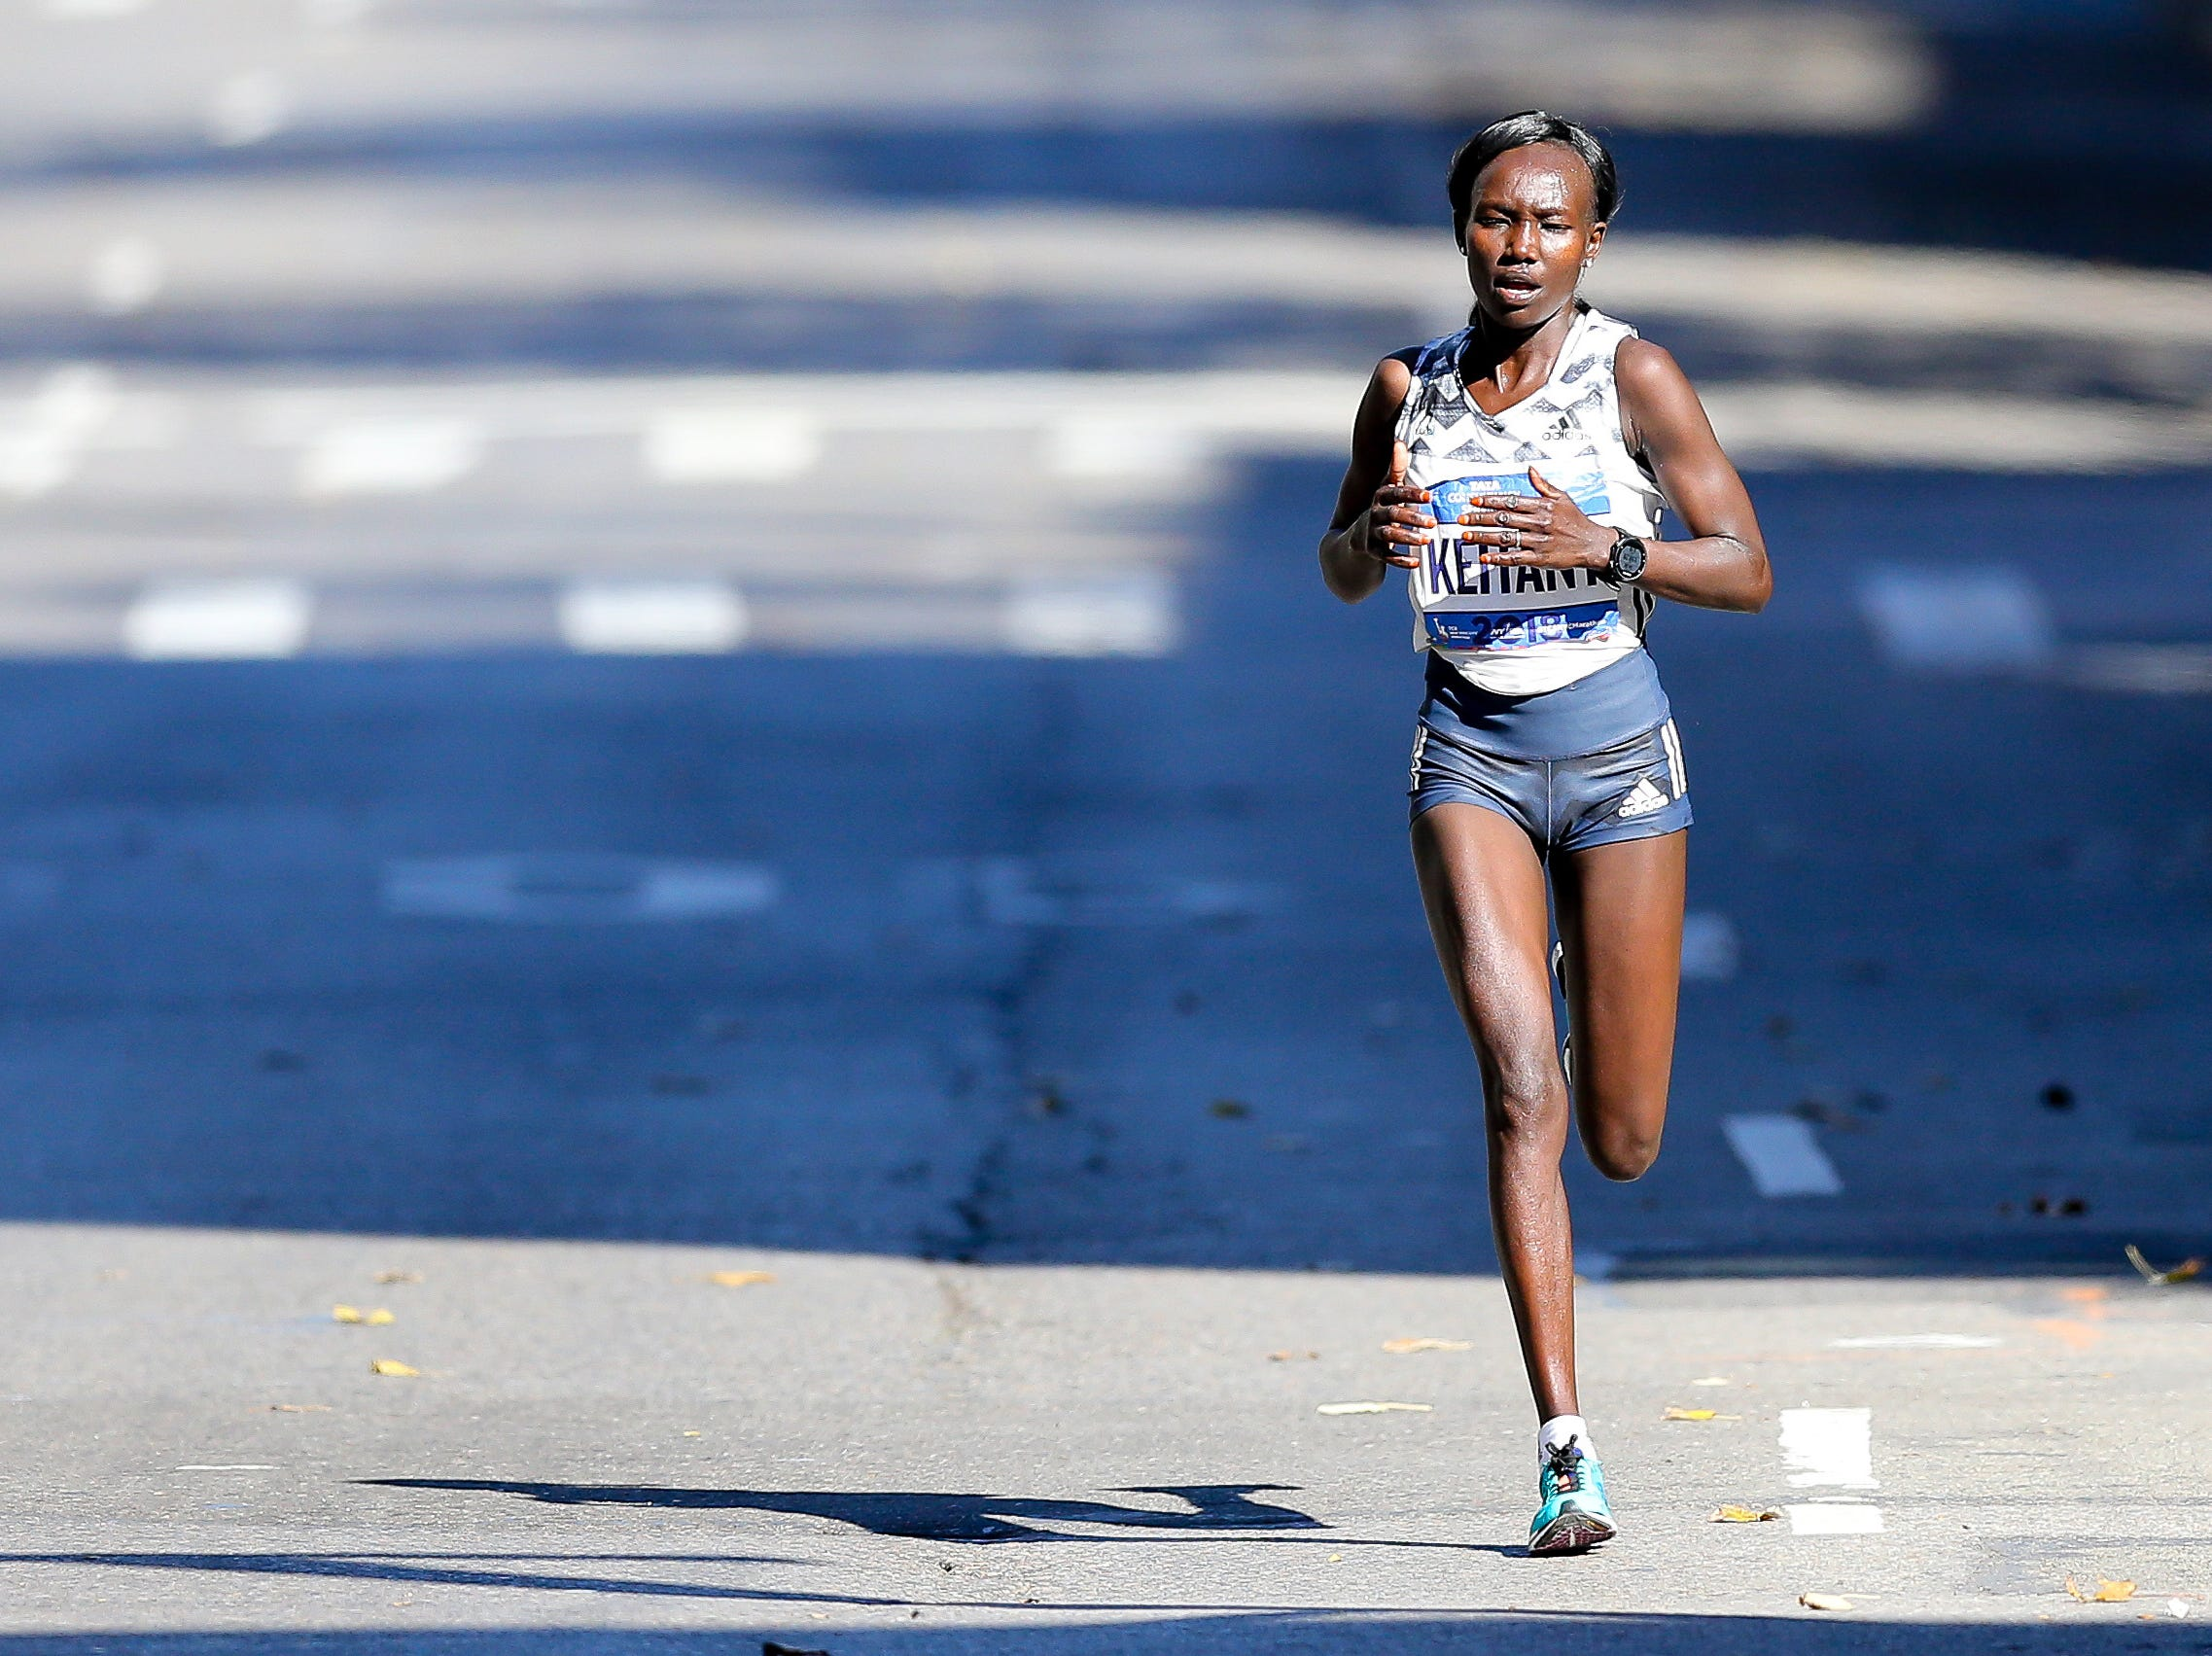 Mary Keitany of Kenya wins the 2018 TSC New York City Marathon, finishing more than 3 minutes ahead of Vivian Cheruiyot, who was second.